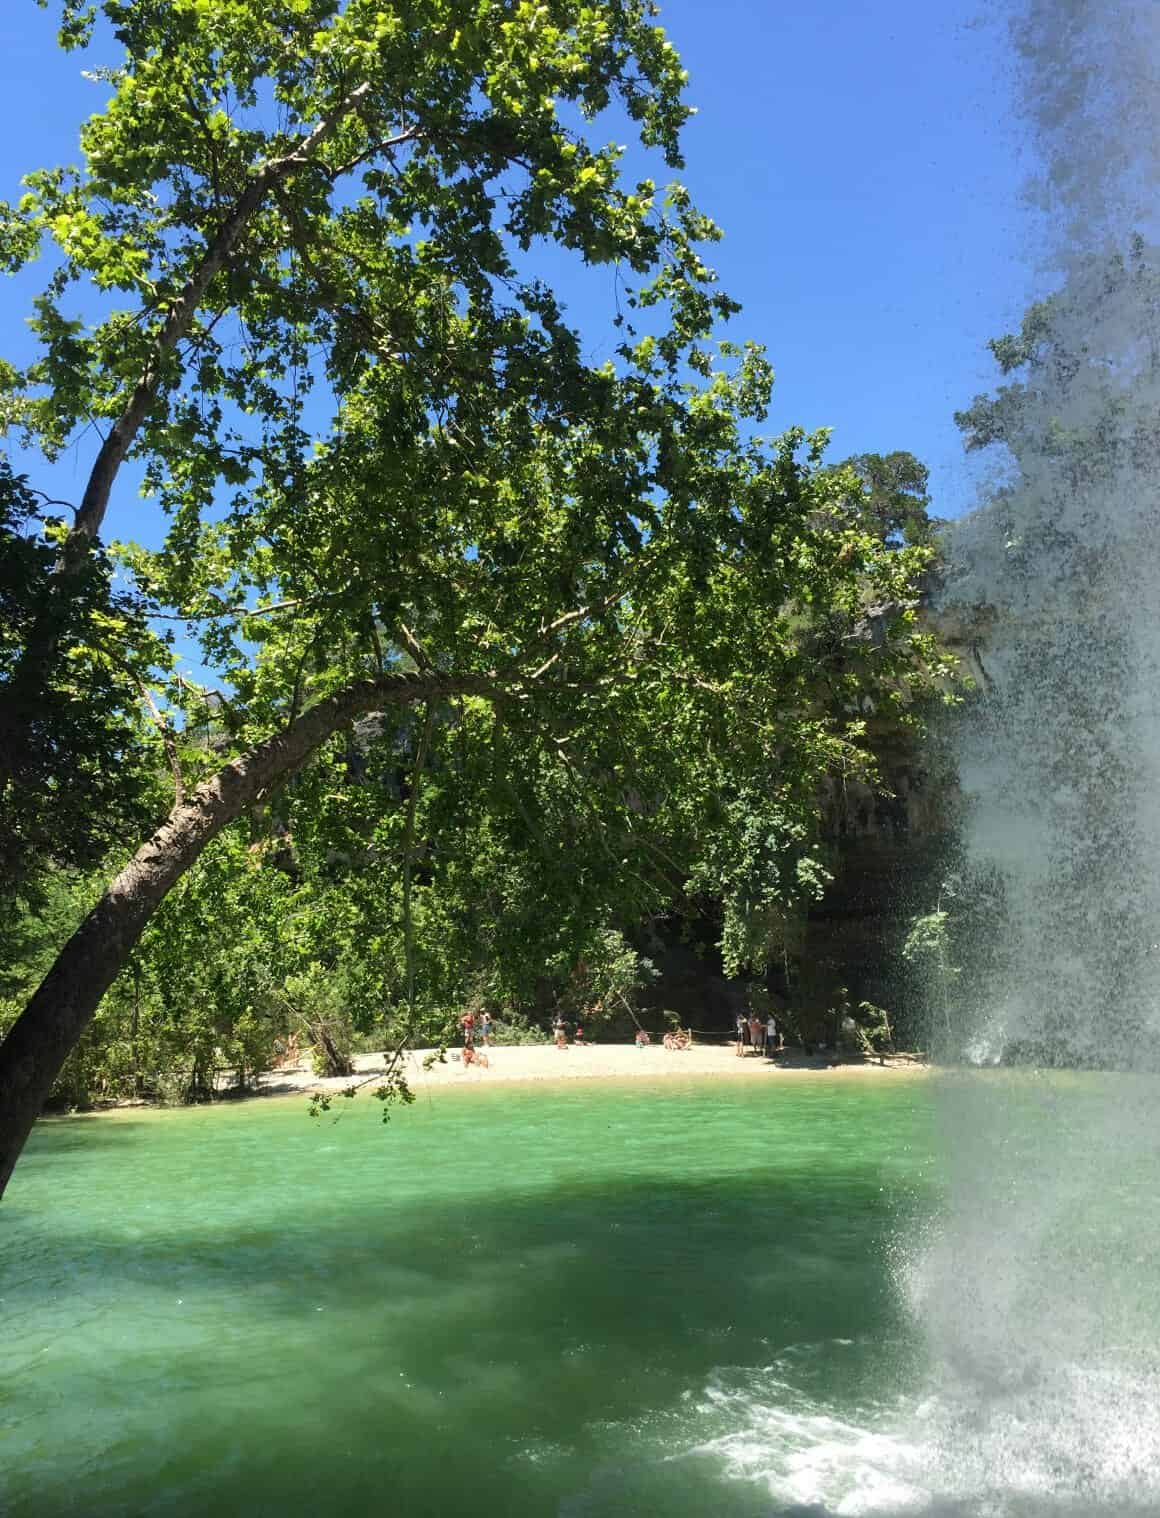 A picnic at Hamilton Pool, Dripping Springs TX